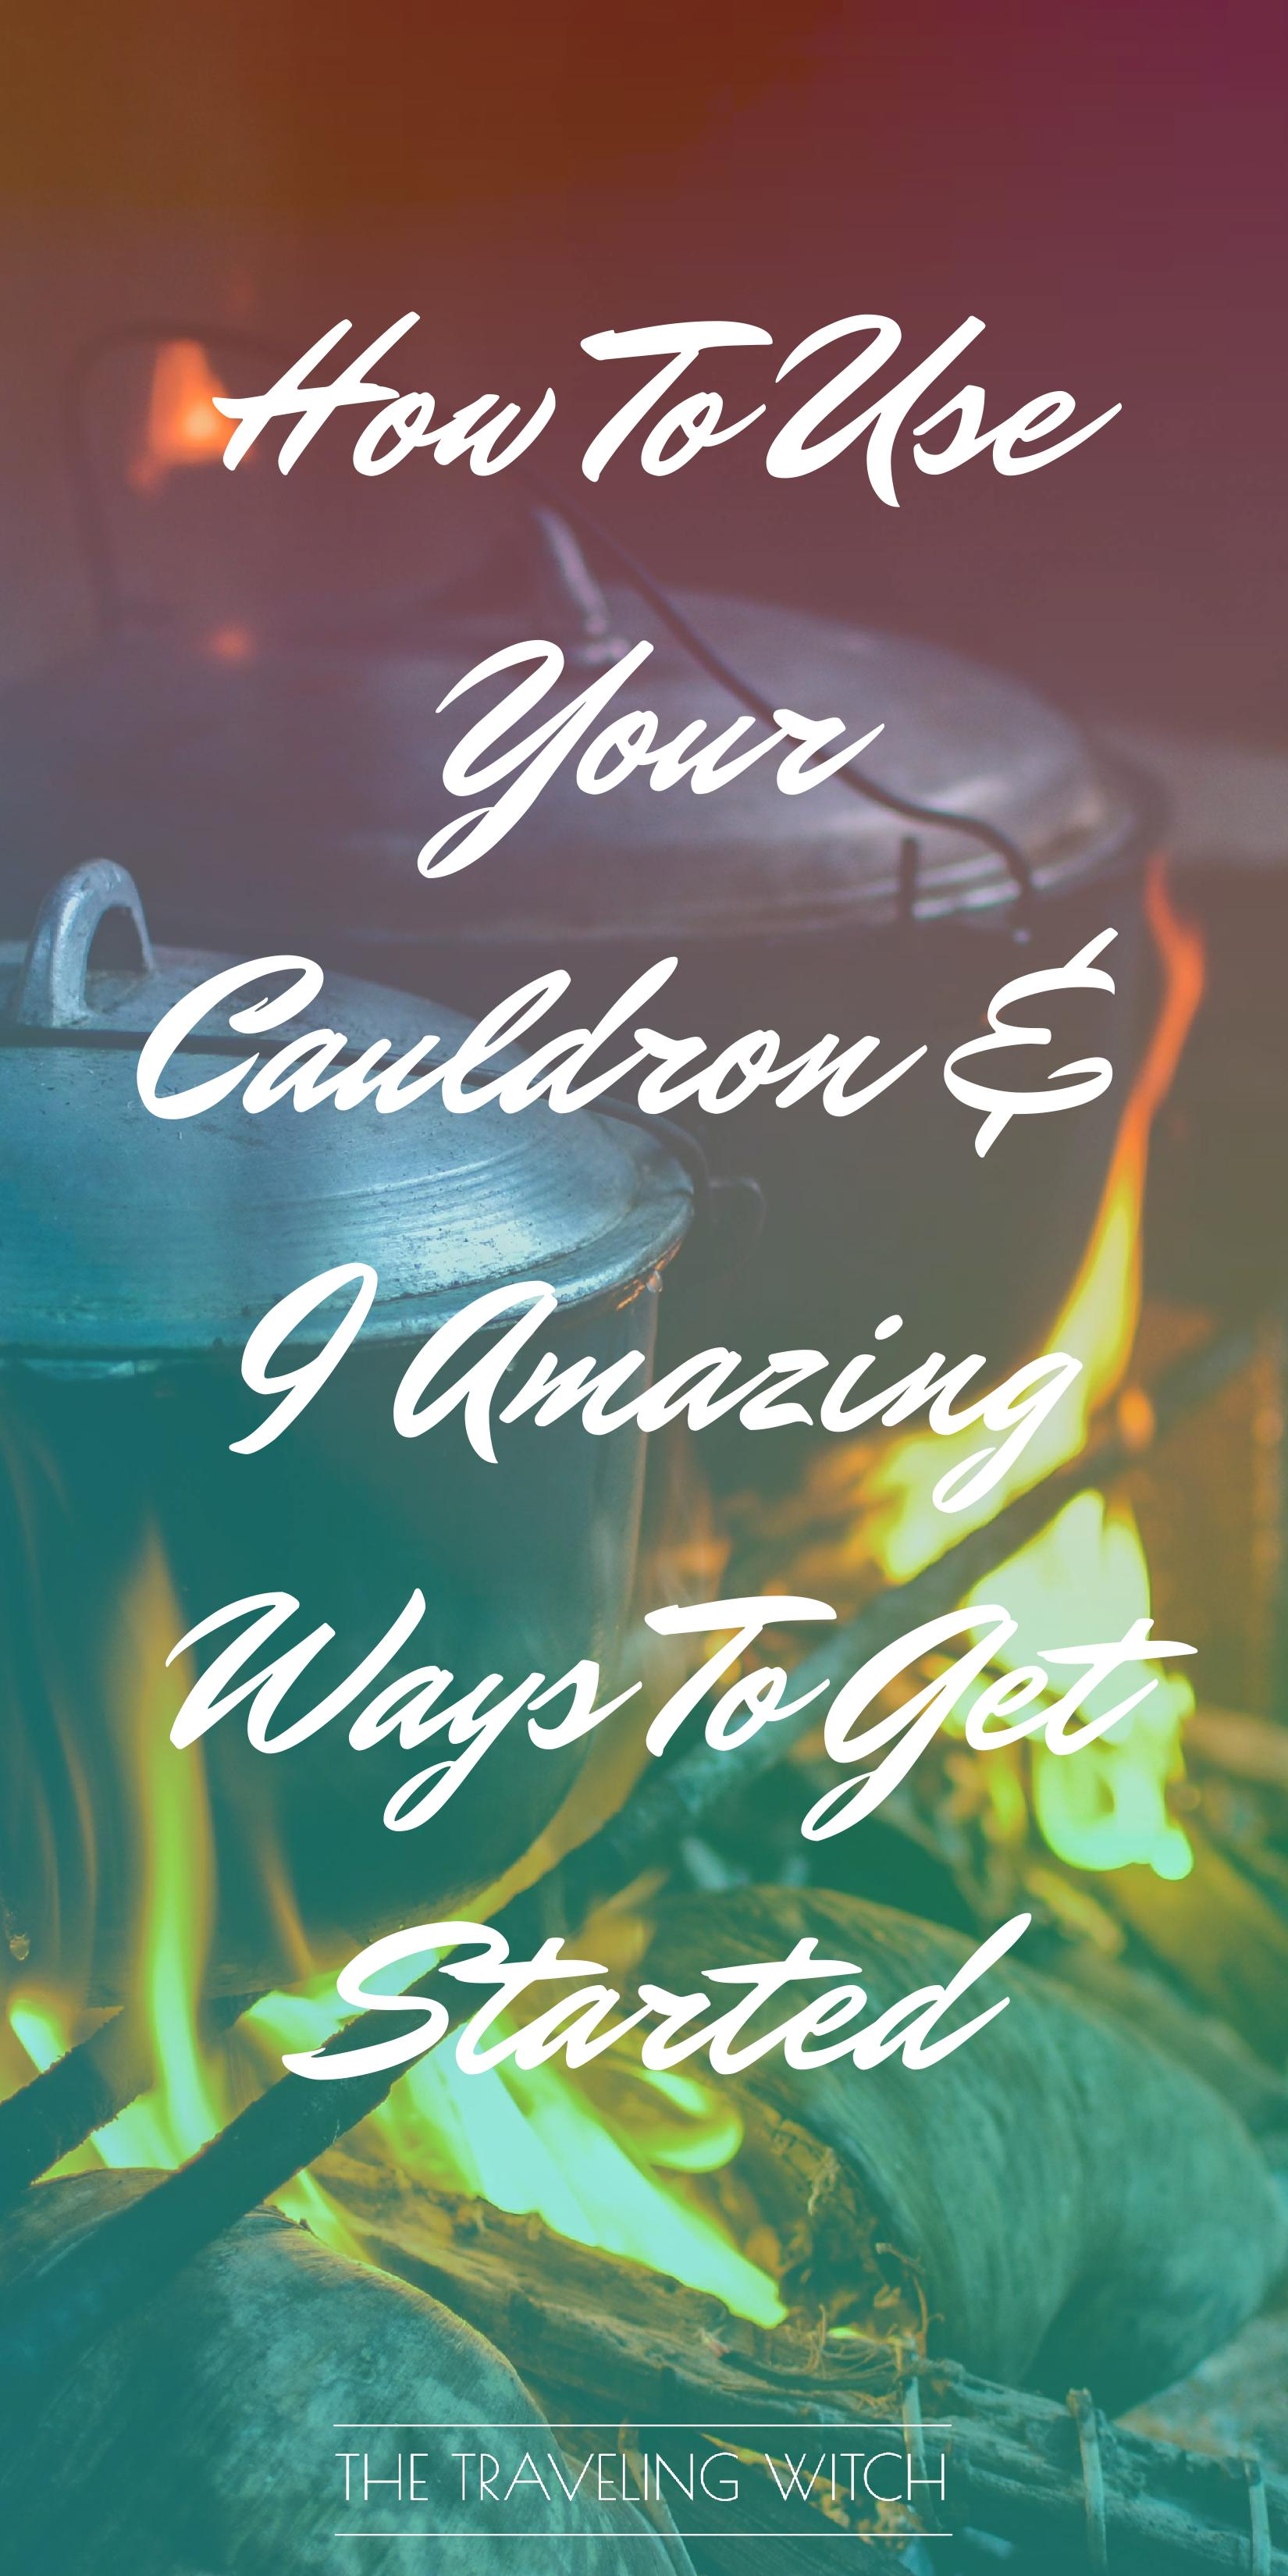 How To Use Your Cauldron & 9 Amazing Ways To Get Started // Witchcraft // Magic // The Traveling Witch